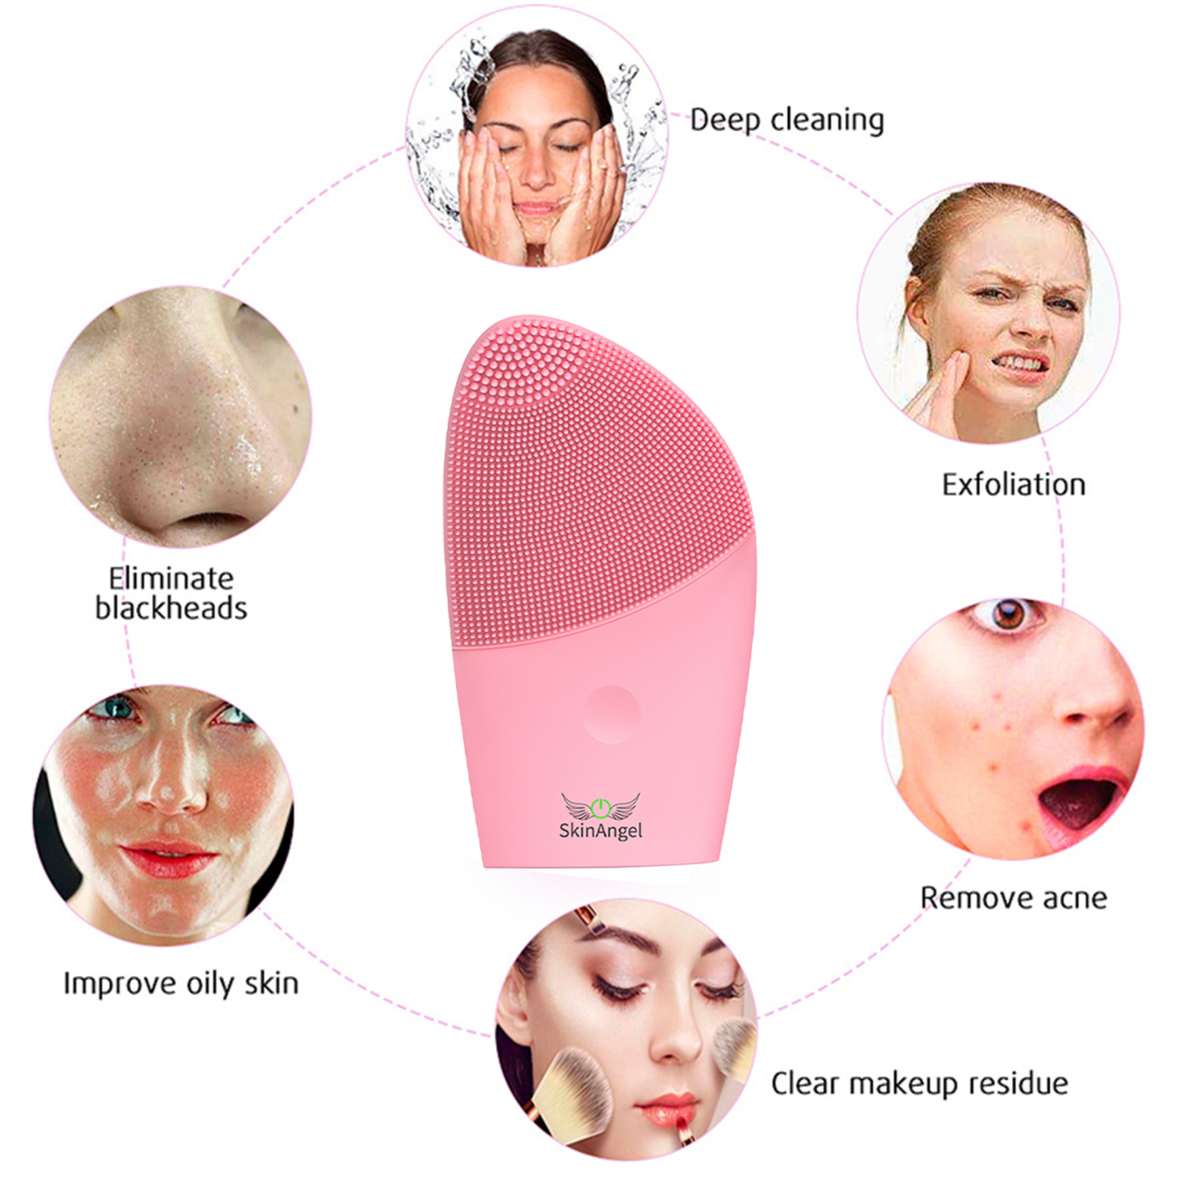 SkinAngel Electric Silicone Cleanser Massager Deep Face Wash et our eBay store